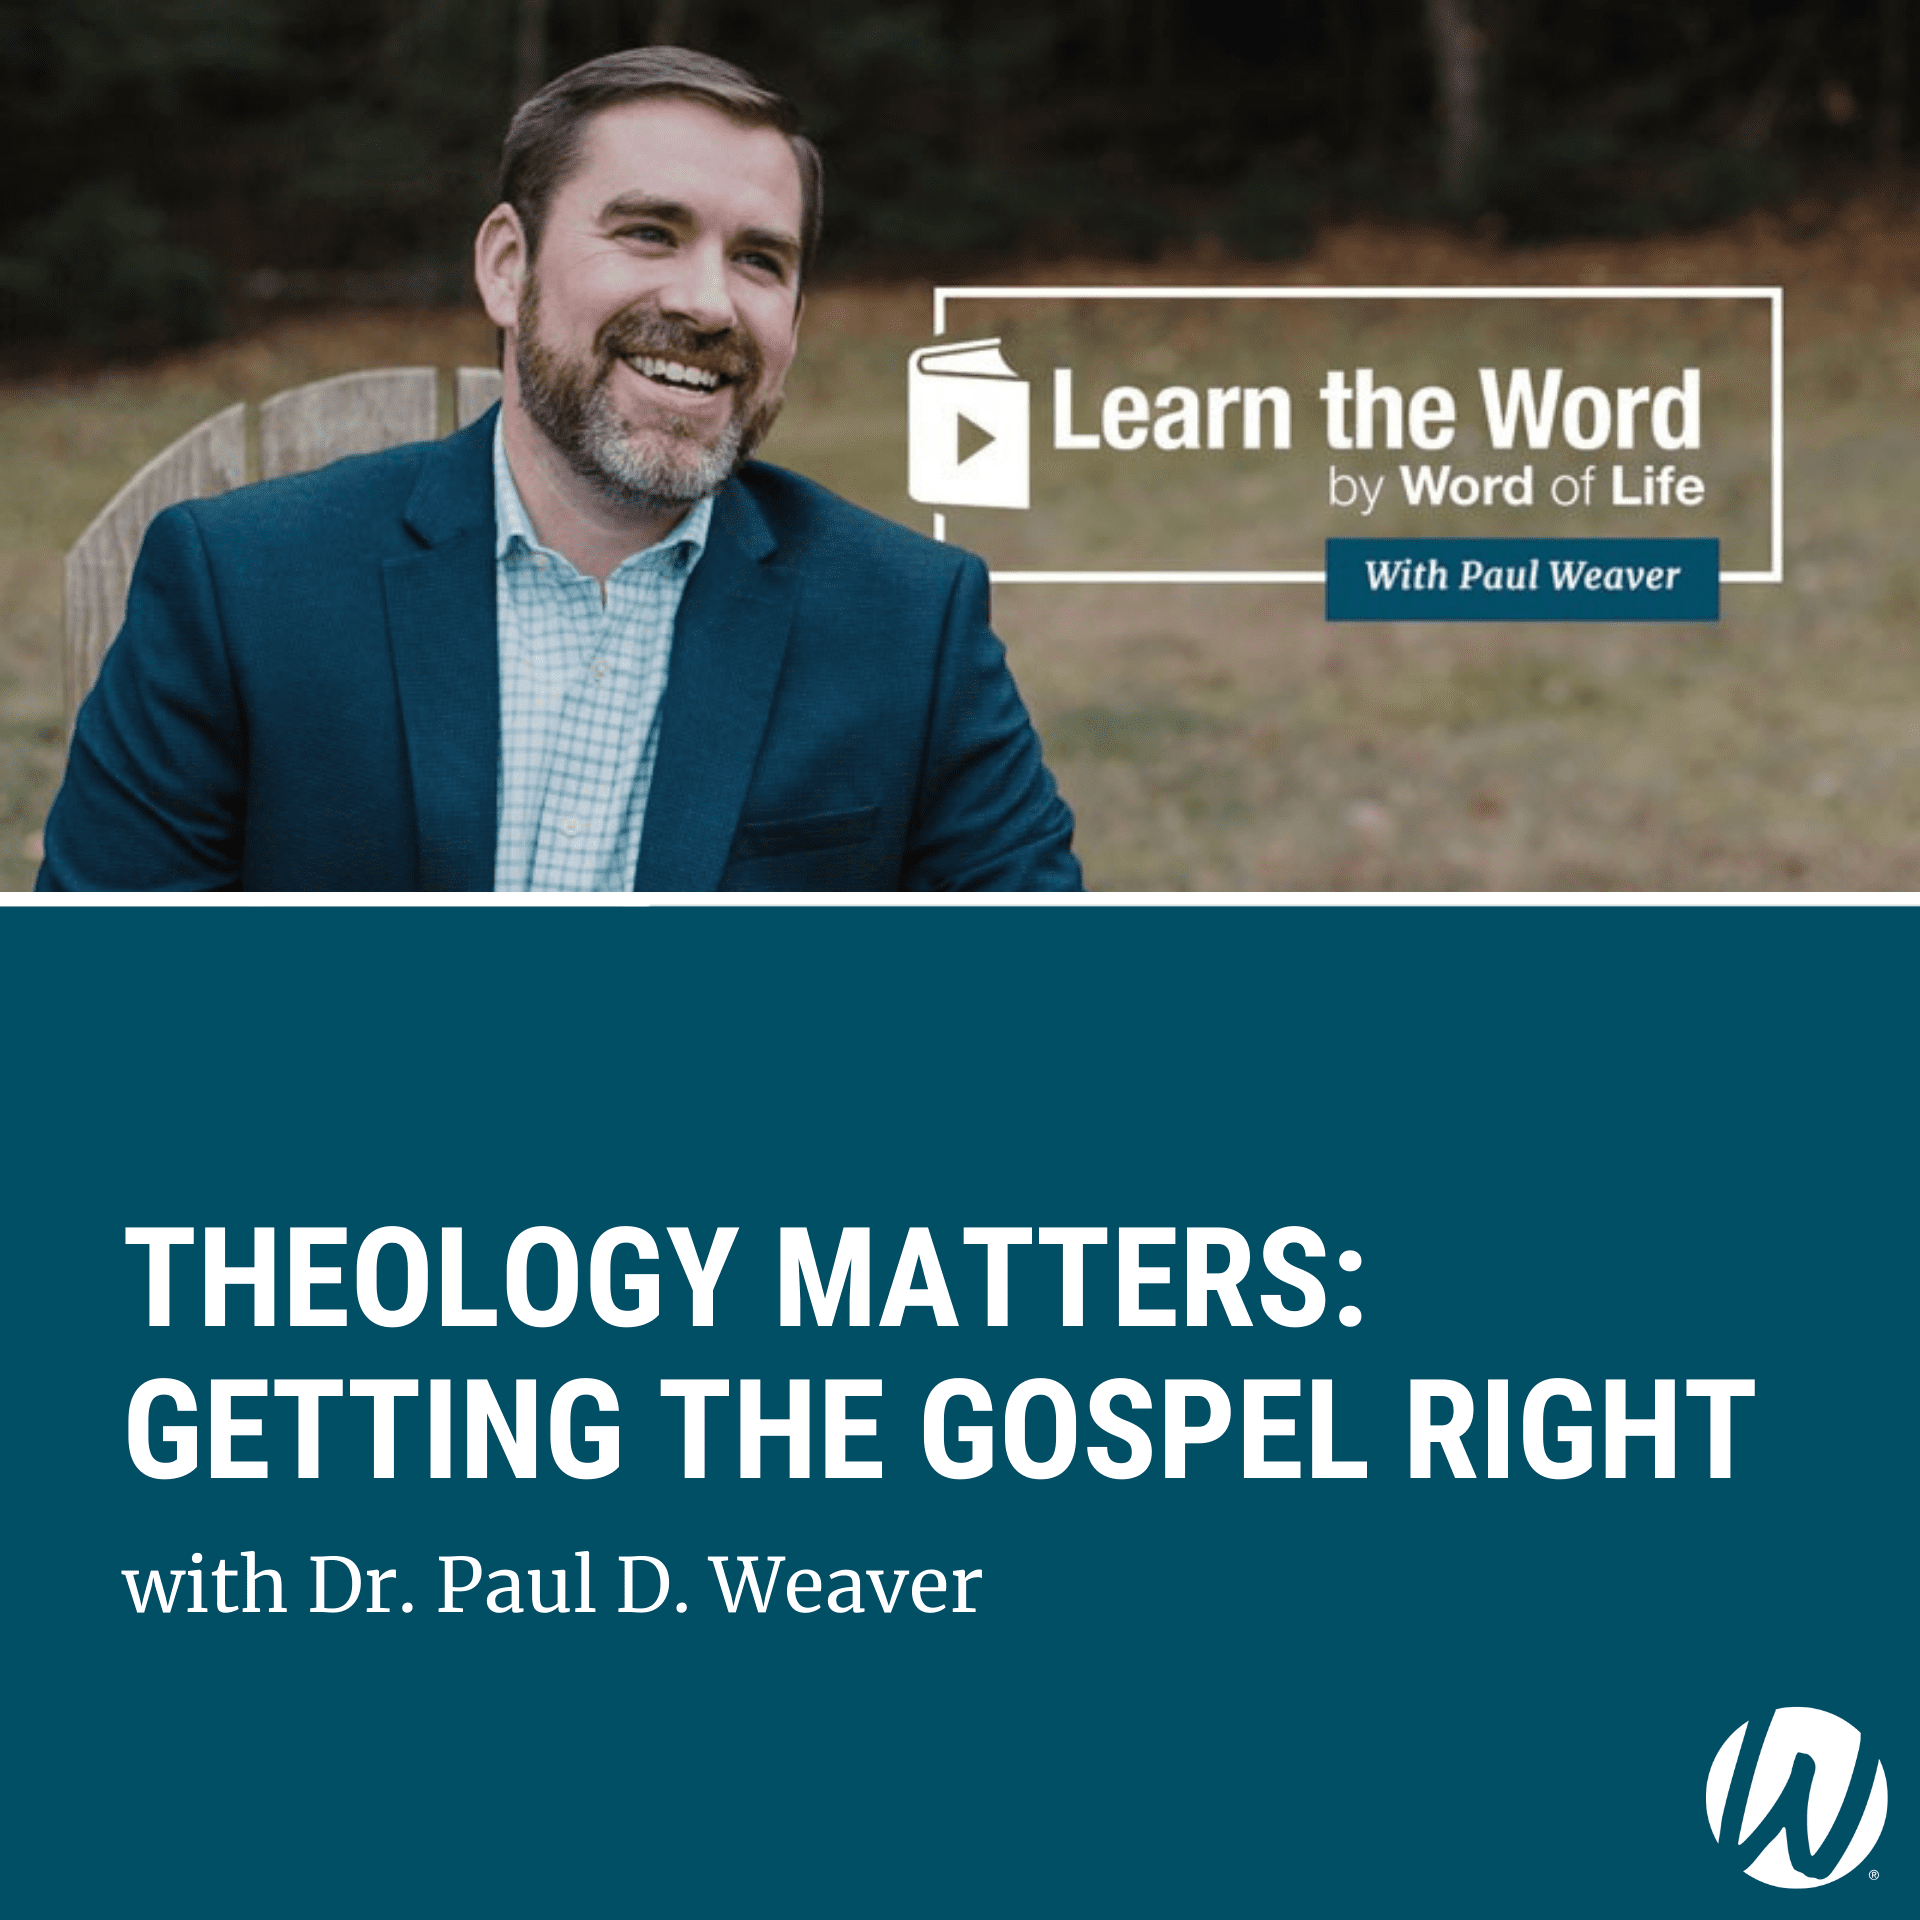 LTW171 - Theology Matters: Getting the Gospel Right